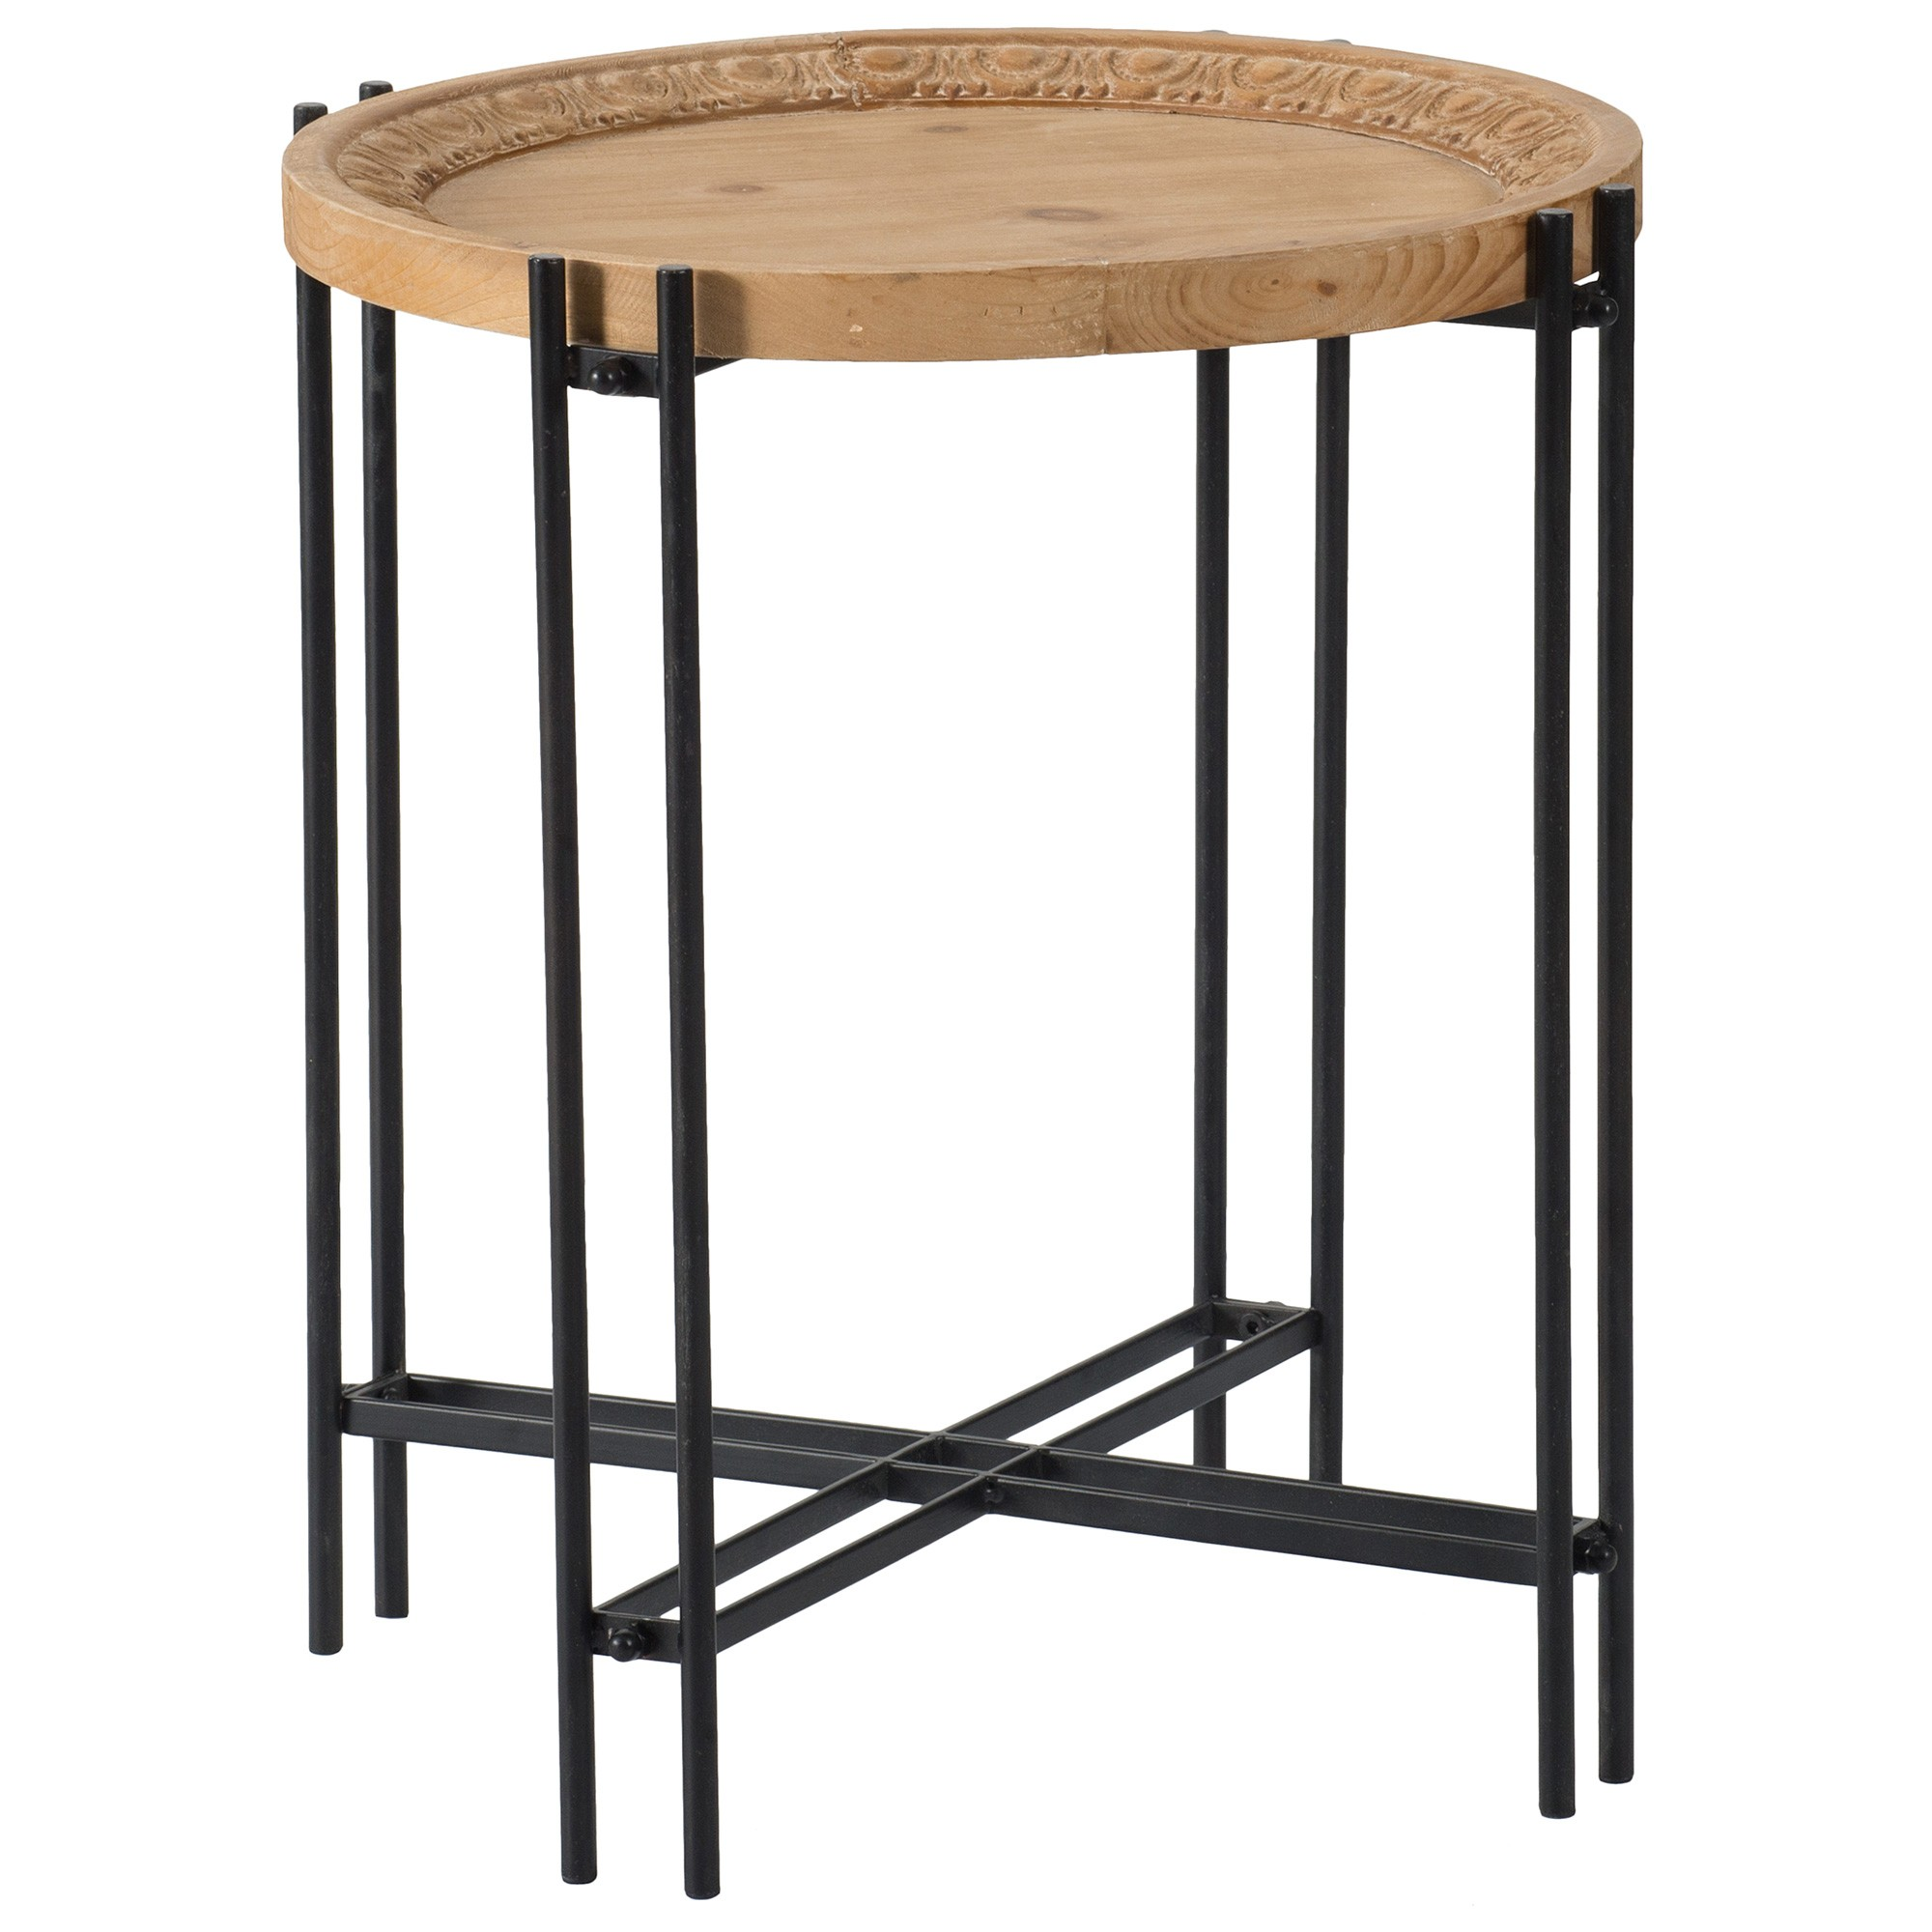 Bella Fir Timber Topped Metal Round Side Table